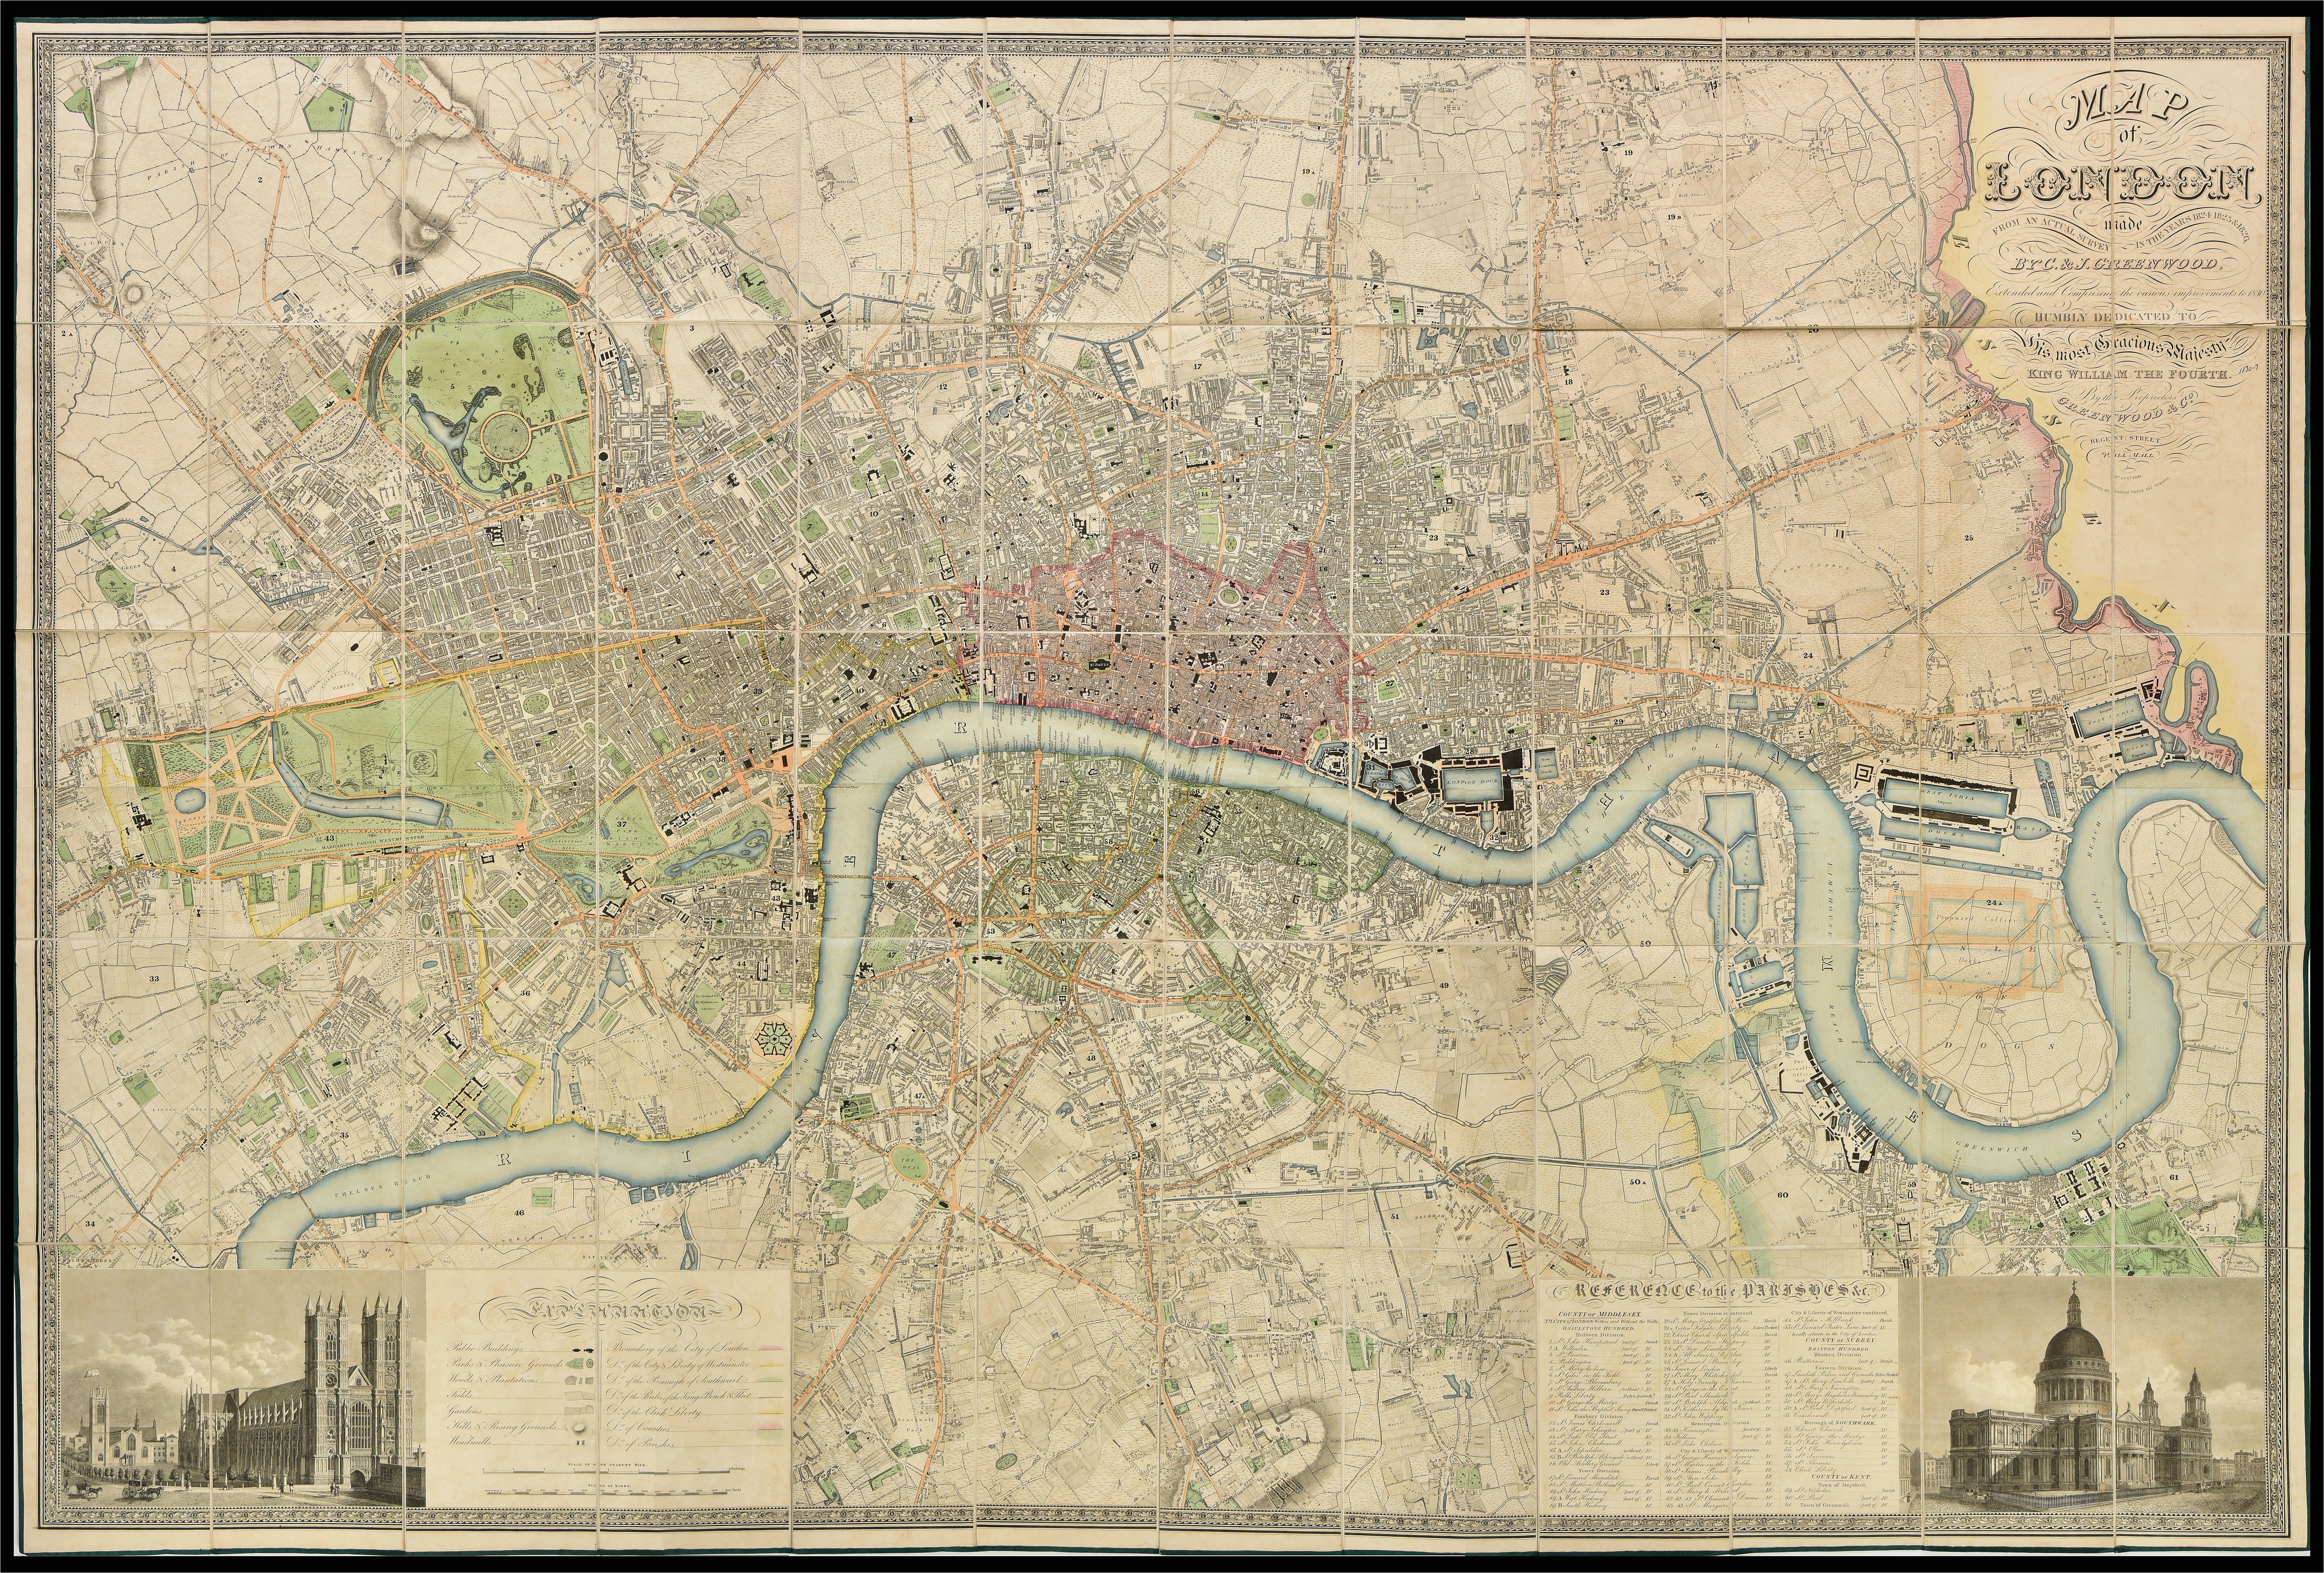 fascinating 1830 map shows how vast swathes of the capital